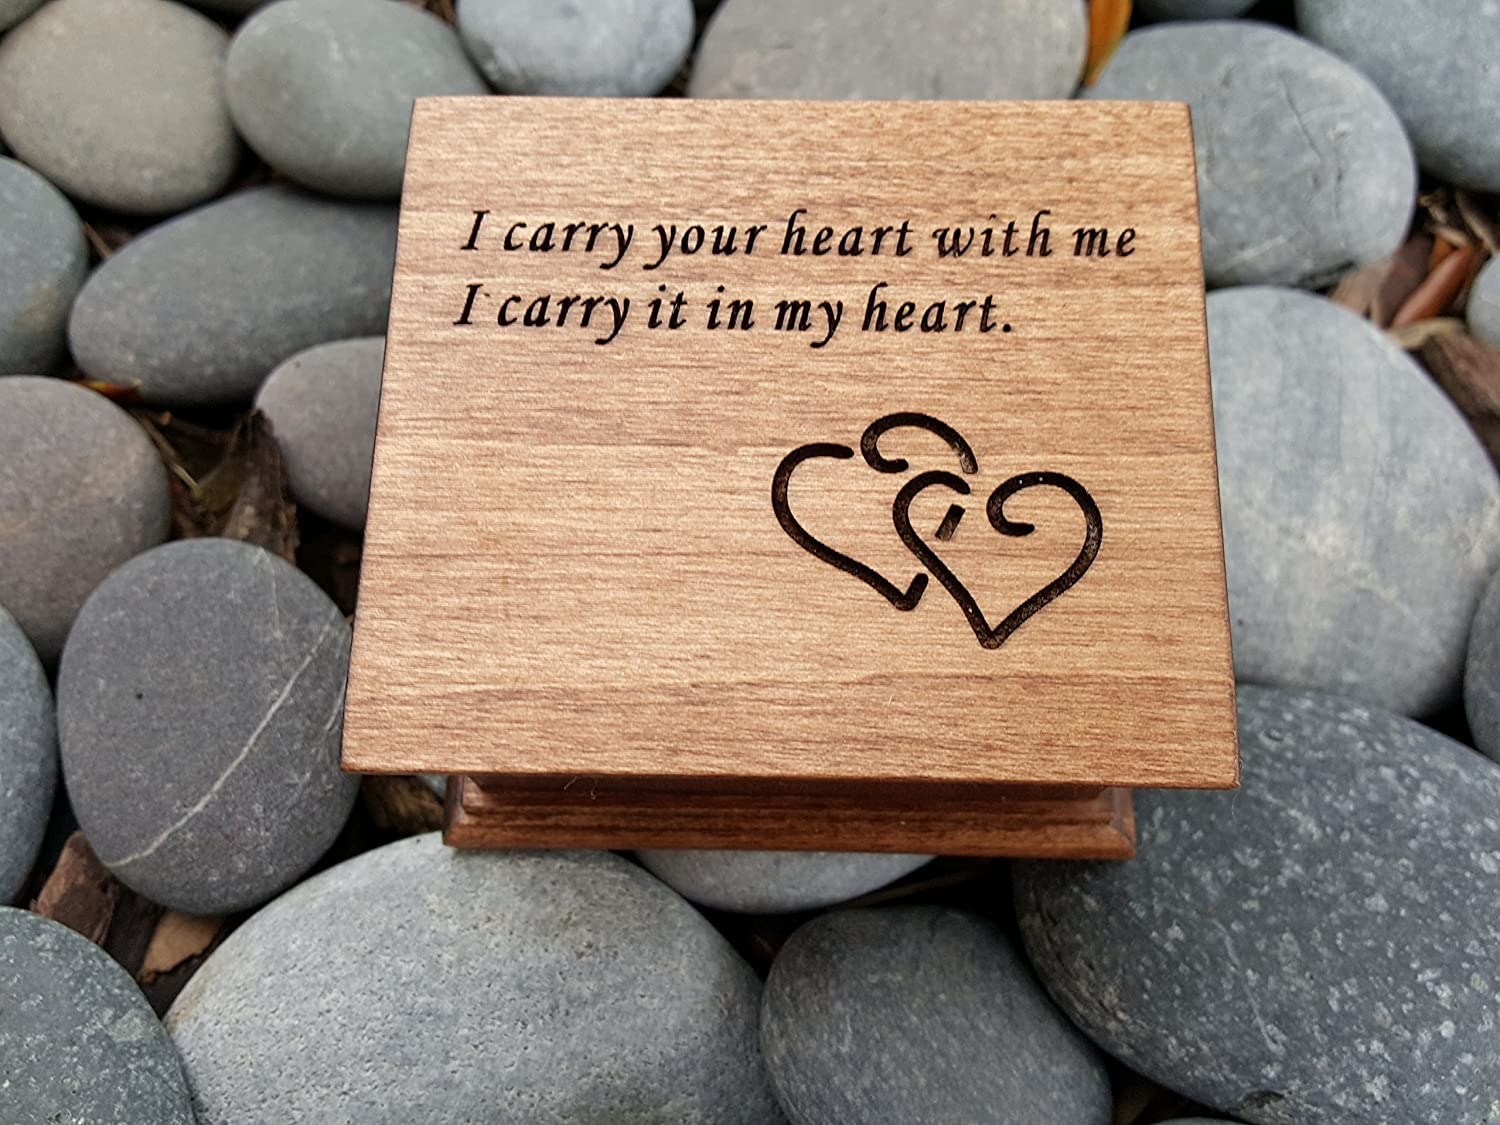 Custom Made Music Box With I Carry Your Heart With Me Engraved On Top Perfect Birthday Gift For Daughter Or Mom Handmade